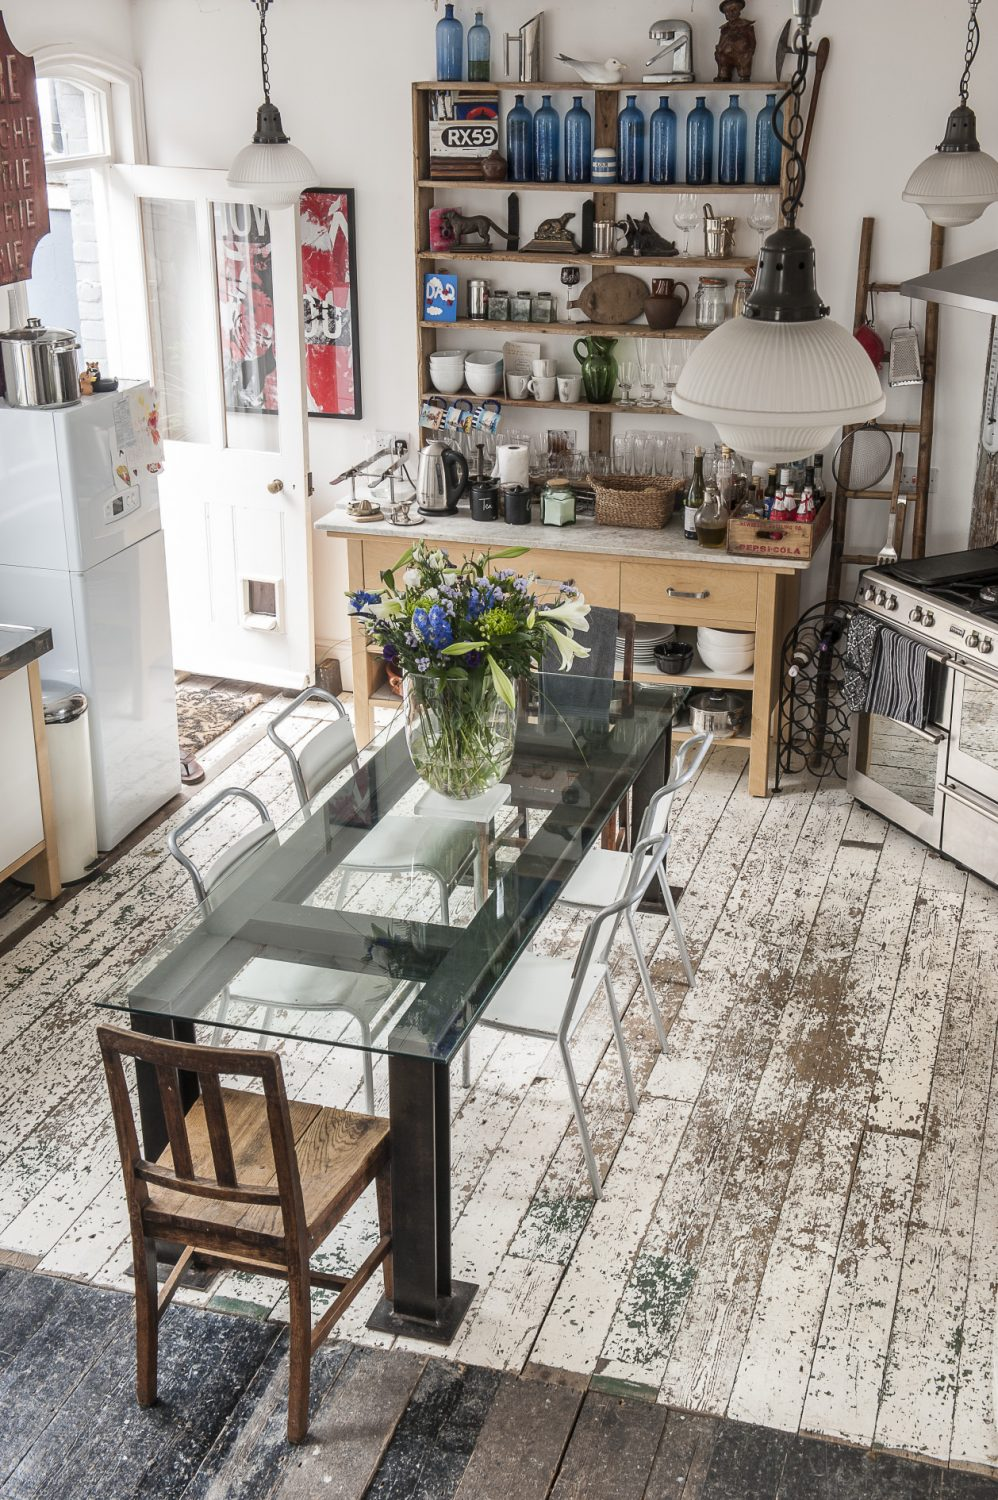 It has taken vision and a huge amount of hard graft to scrape away the years of cover-ups and 'improvements' that had been layered onto the walls and floors of the house